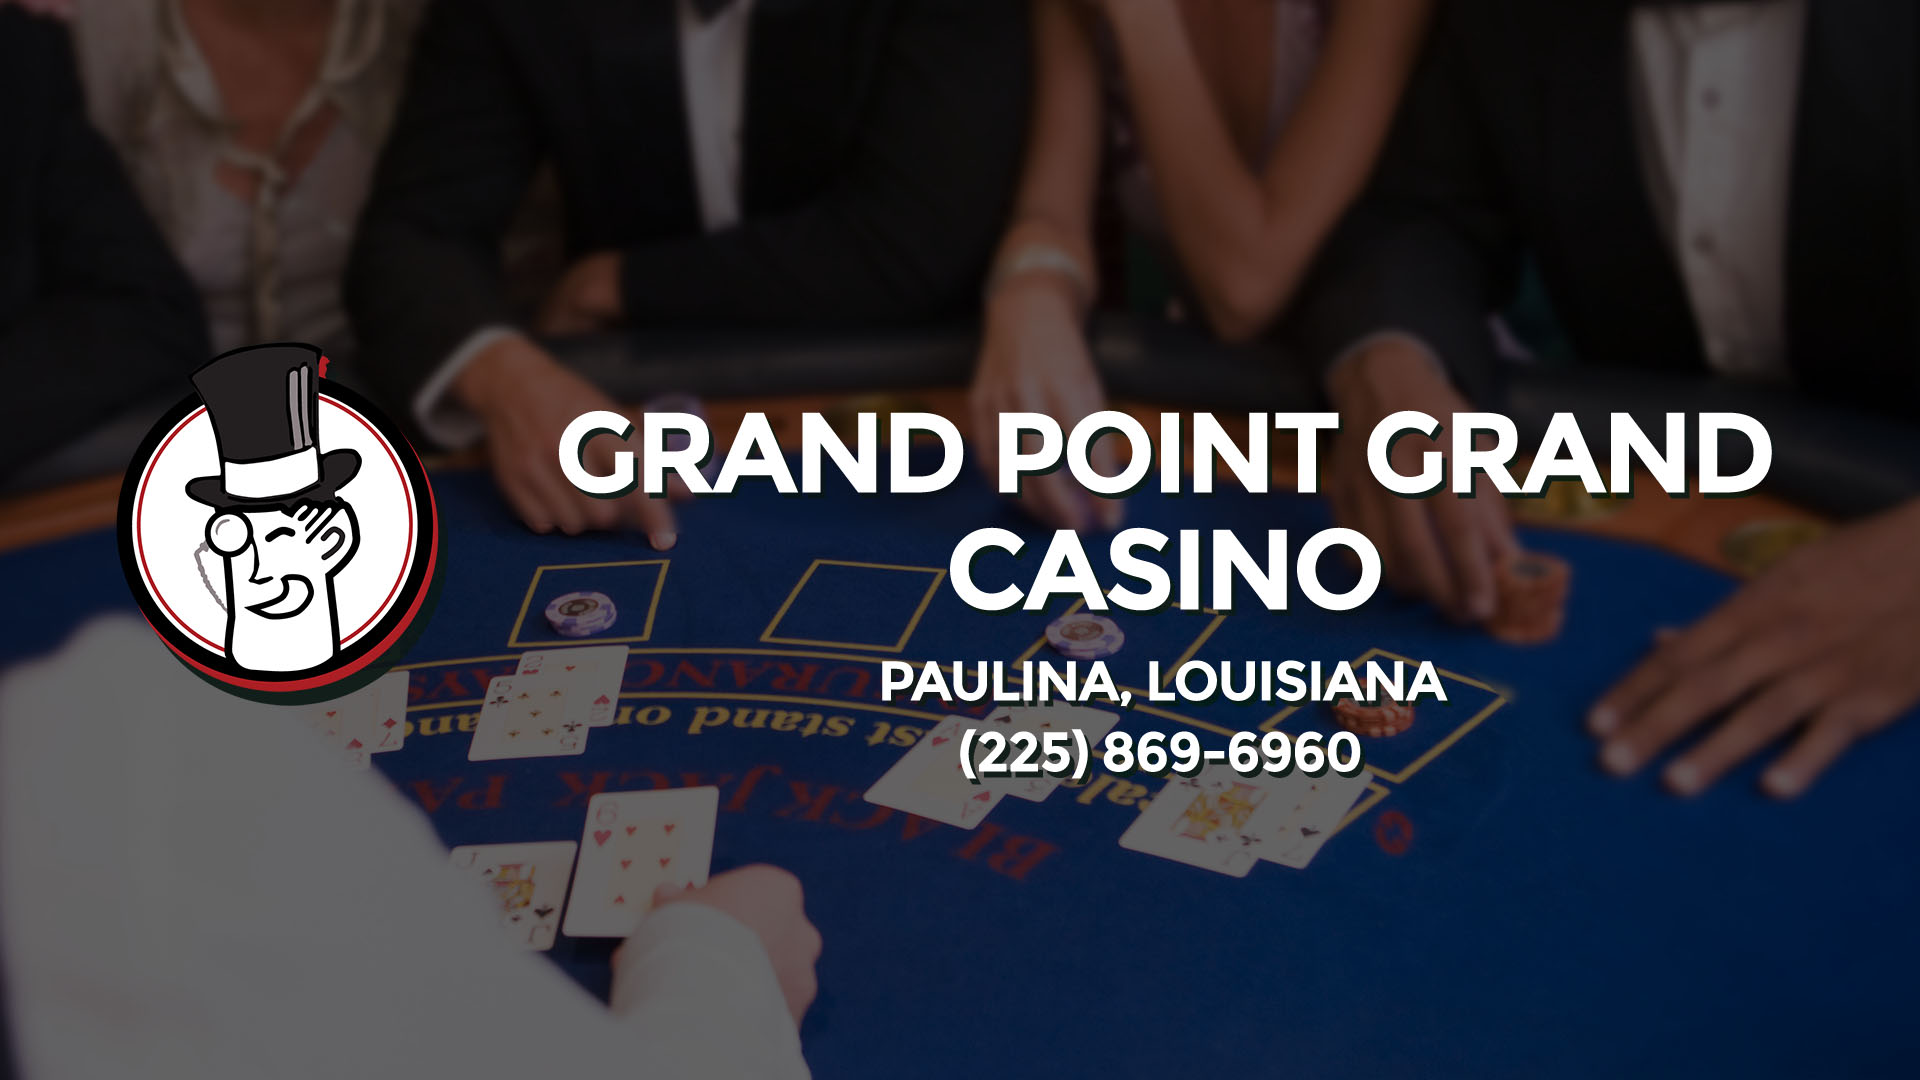 GRAND POINT GRAND CASINO PAULINA LA